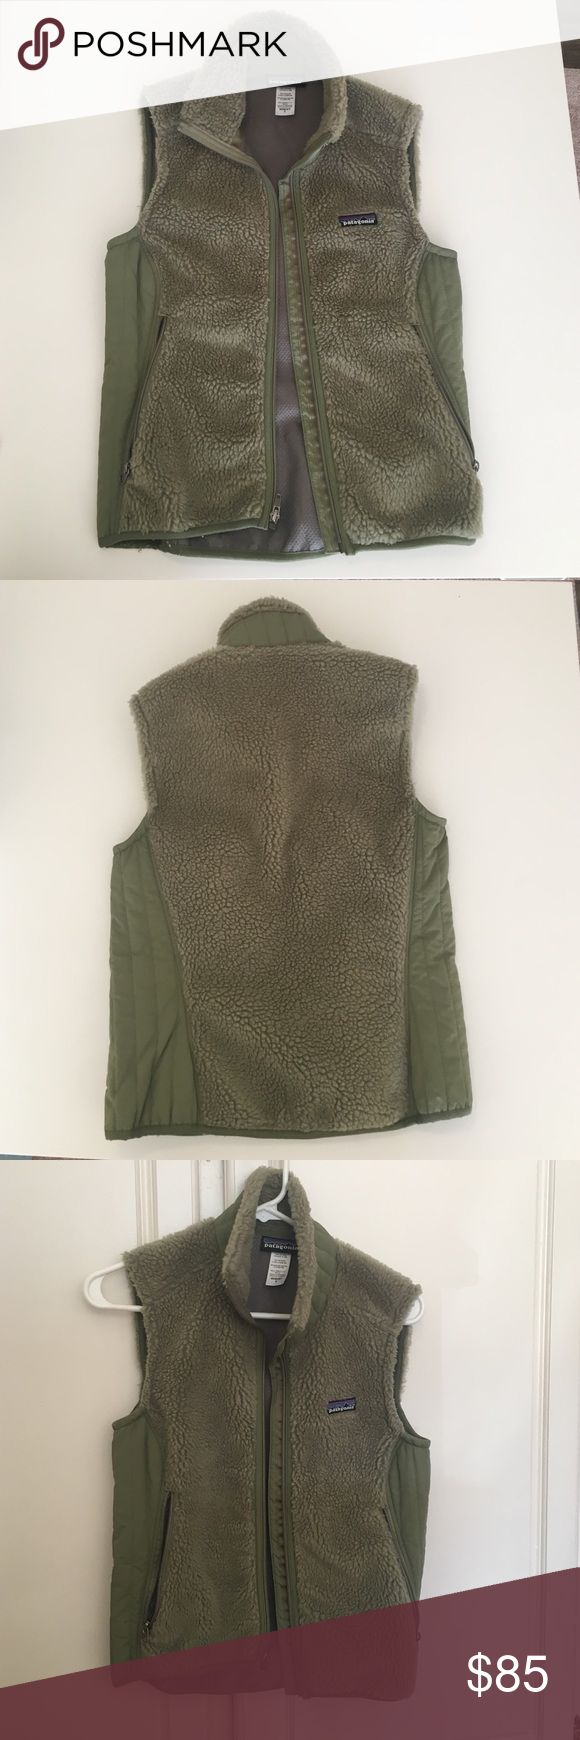 Sage green Patagonia fleece vest This vest has hardly been worn! It's super soft and cozy. I just don't find much use for it because I live in a warmer climate, but it's perfect for cooler weather! Patagonia Jackets & Coats Vests